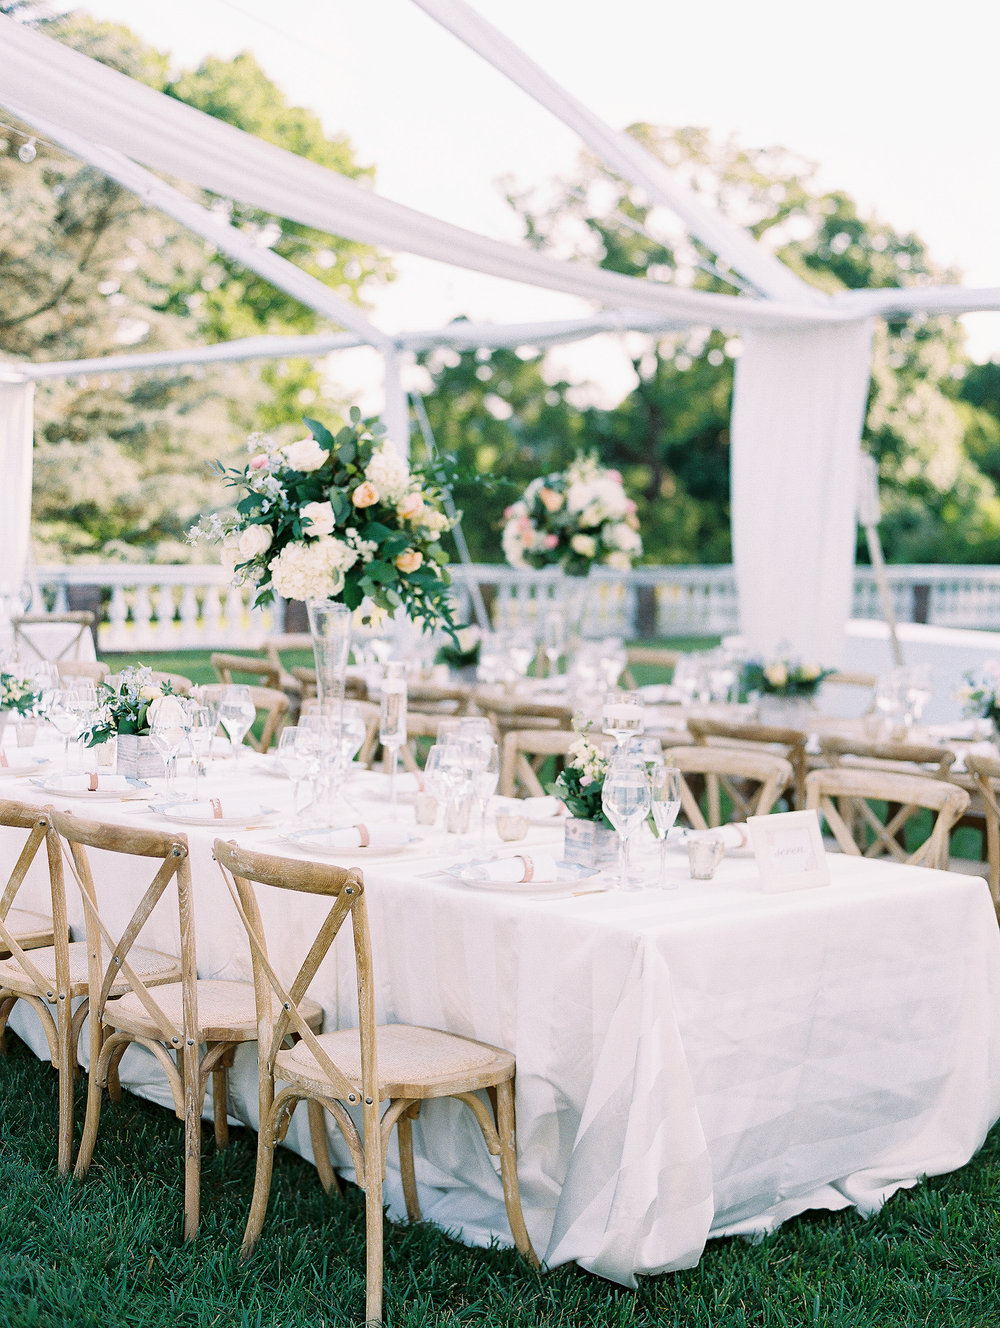 lisa-for-abby-tabitha-katie-tall-low-centerpieces-long-tables-outdoor-wedding-oatlands-jmorrisflowers.jpg